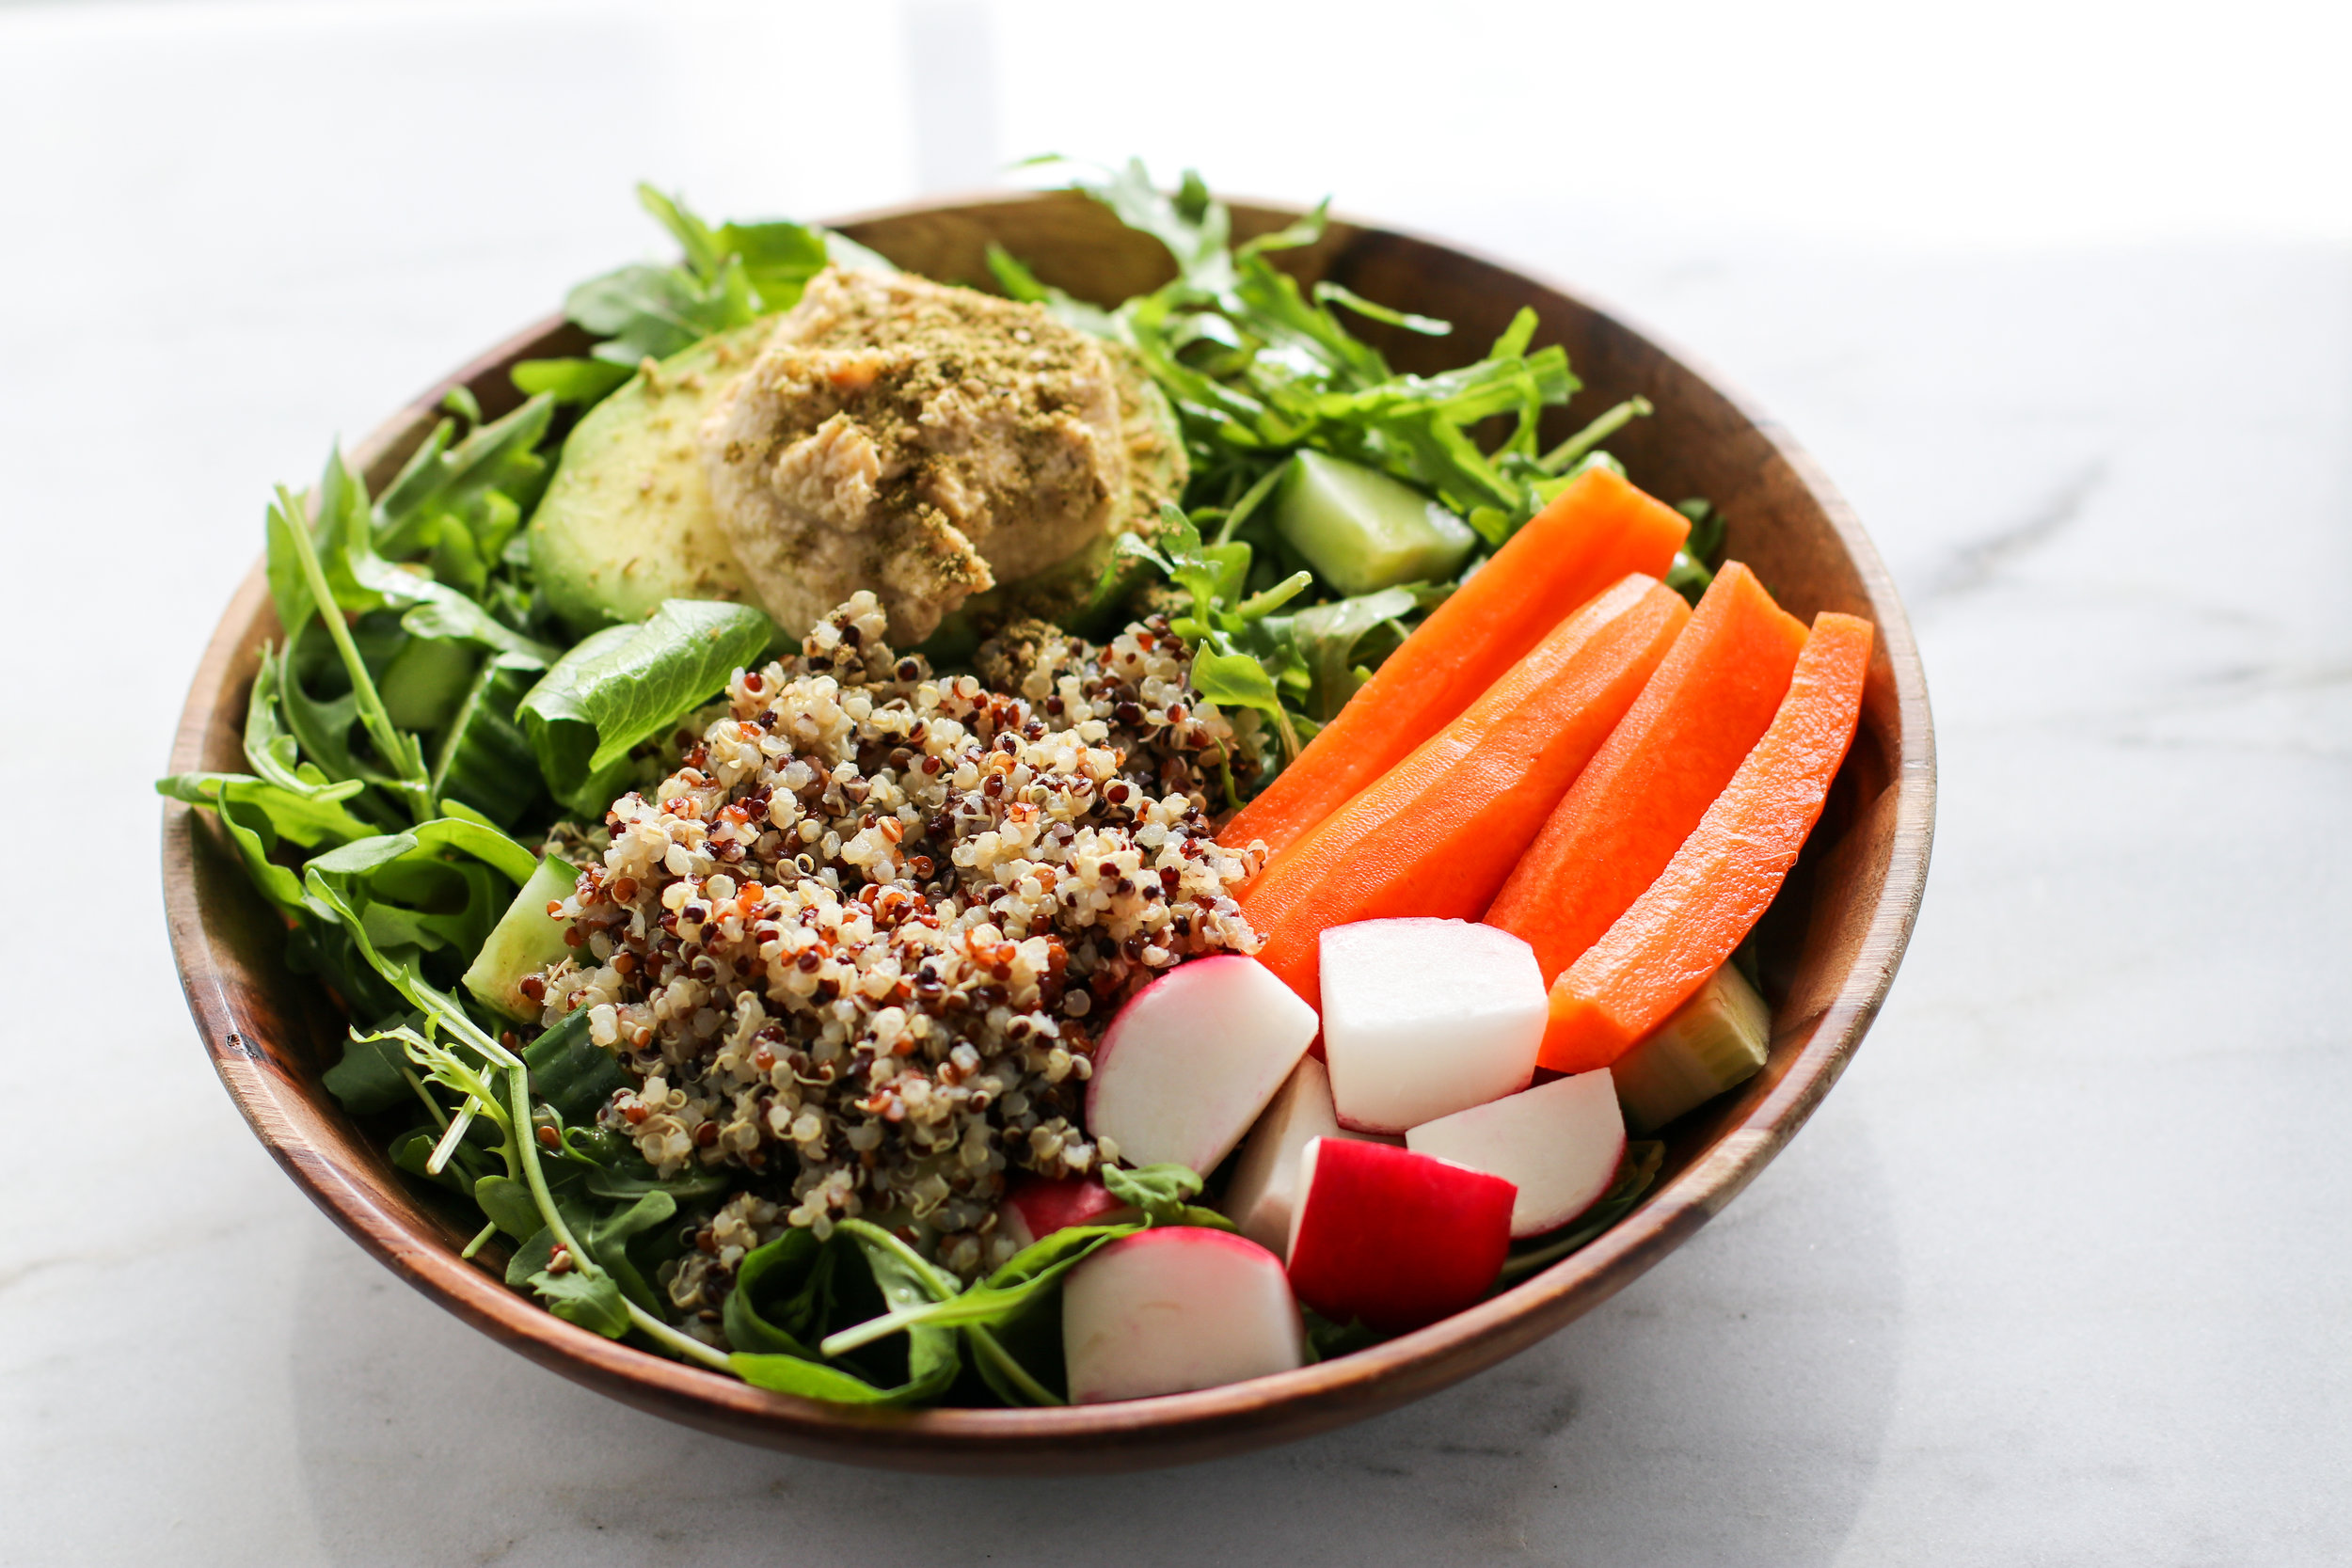 Salad Bowl #1 - I have a salad for lunch most days. Here I've got a bed of arugula + romaine + my house dressing + cucumber + carrots + radish + quinoa + avocado + hummus + za'atar.They look fancy, but honestly come together quickly with everything already chopped in the fridge!